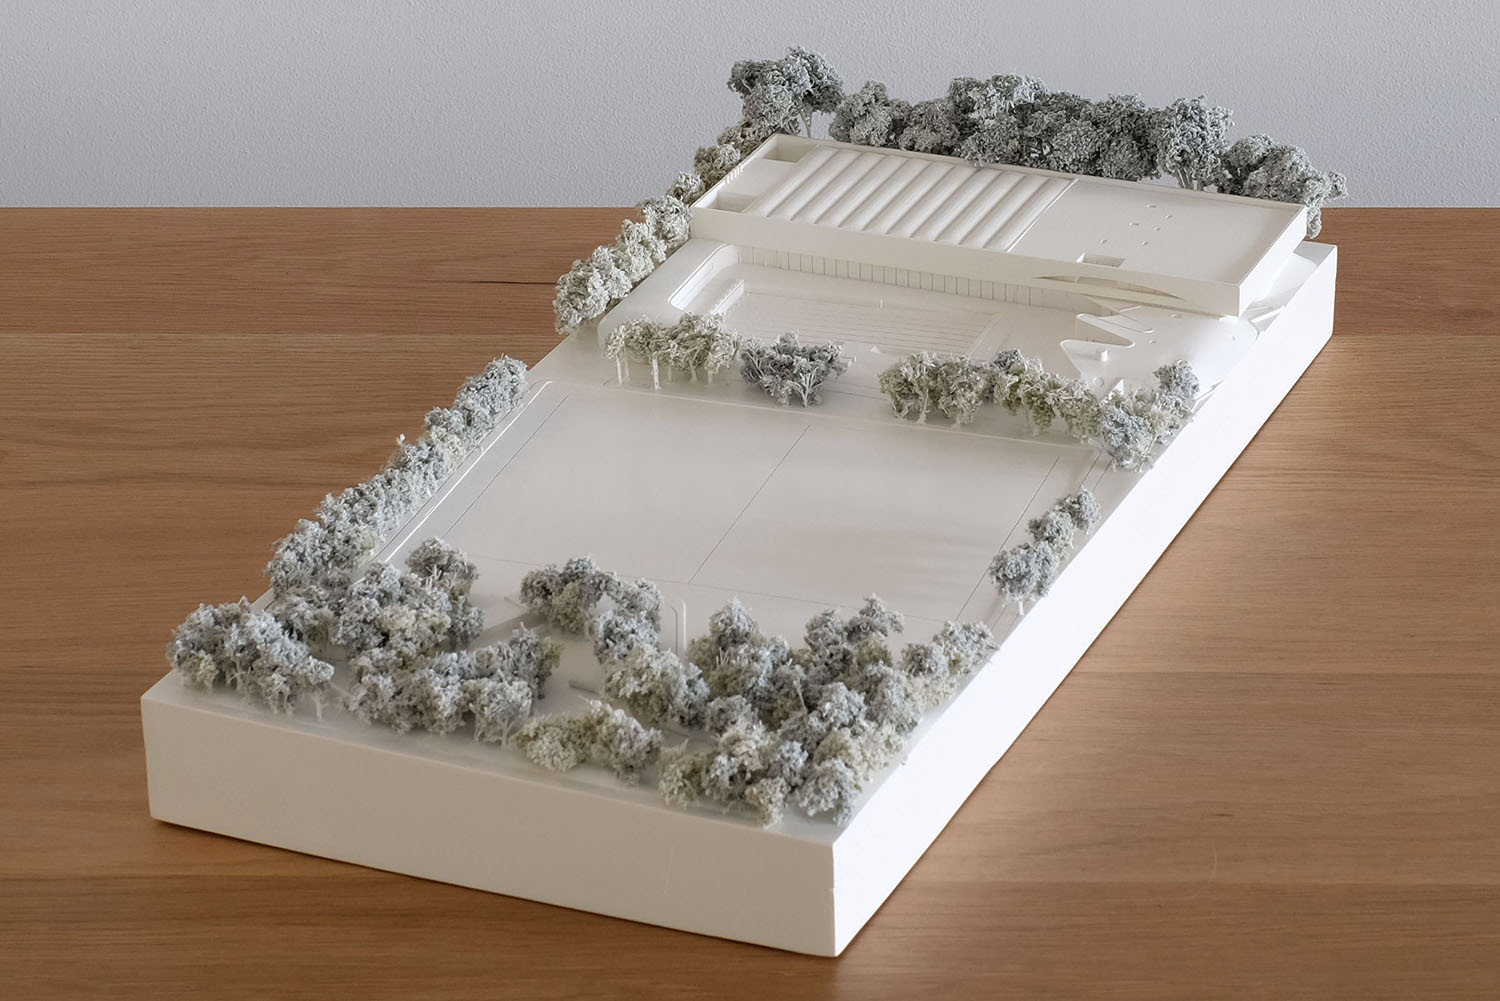 City of Sydney Development Application model with landscaping and trees